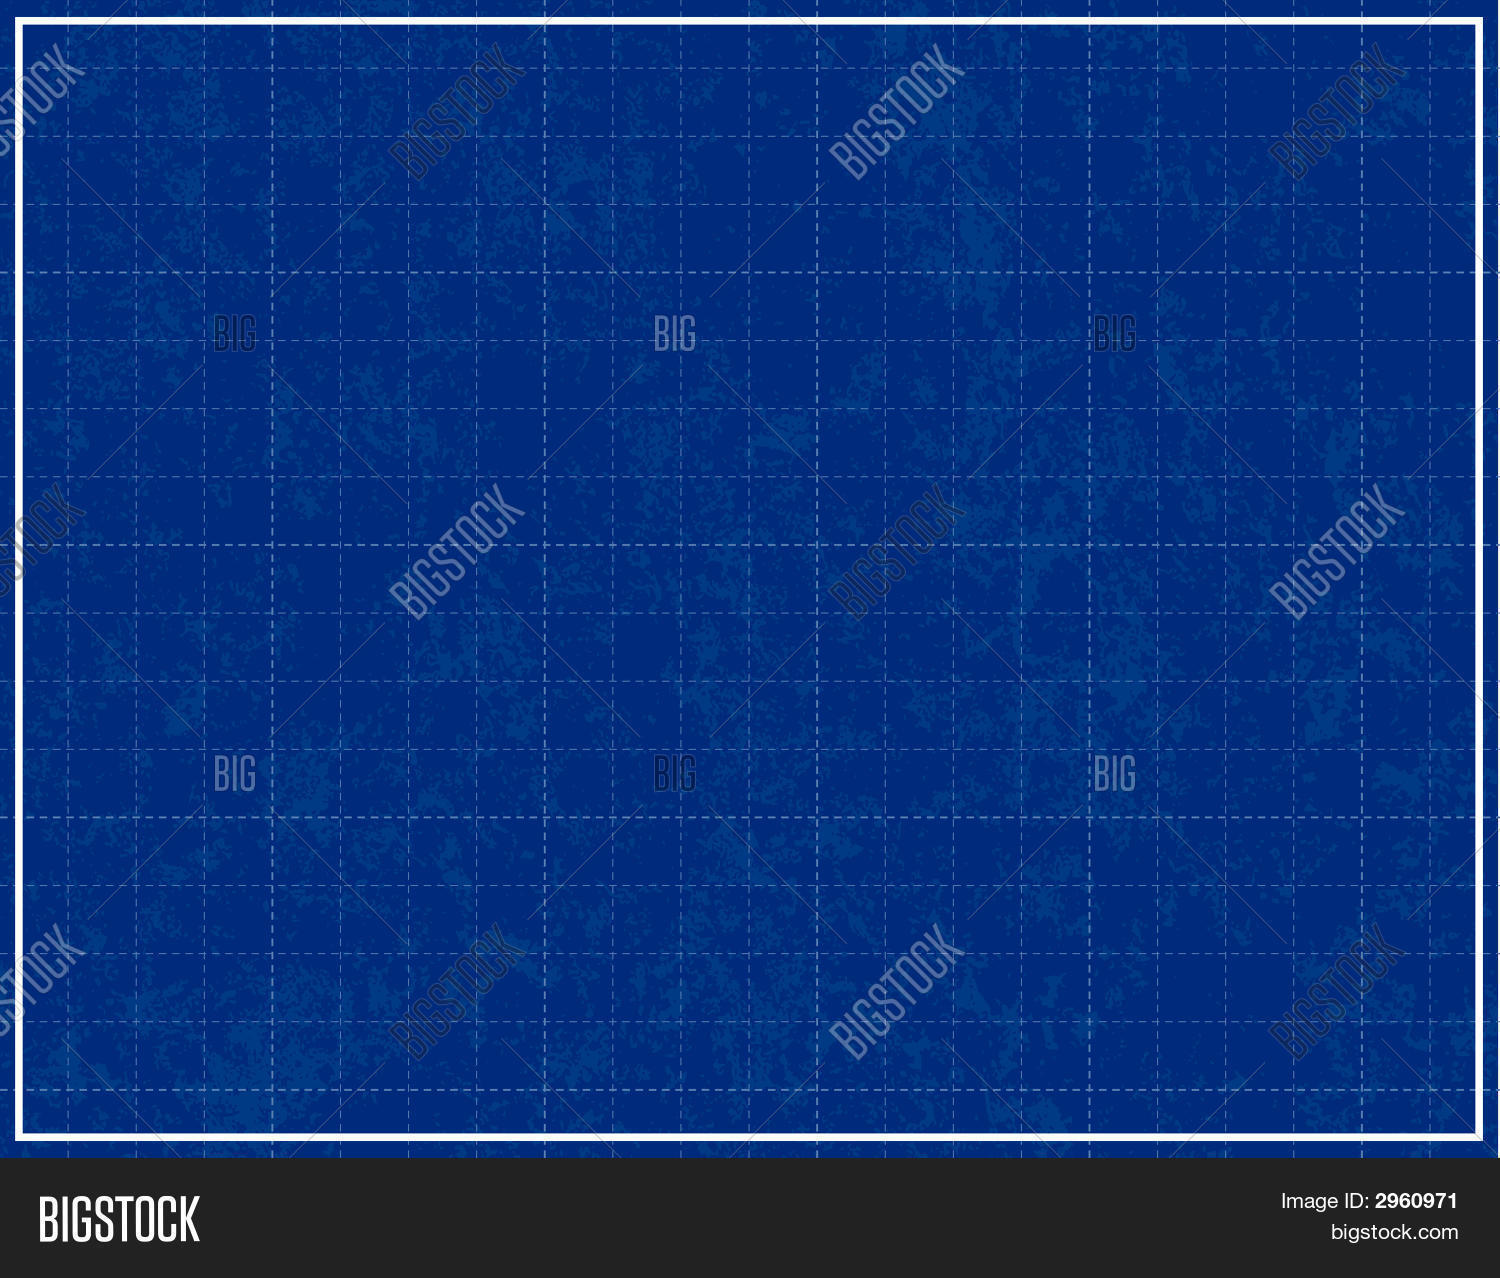 Blueprint background vector photo free trial bigstock blueprint background malvernweather Images